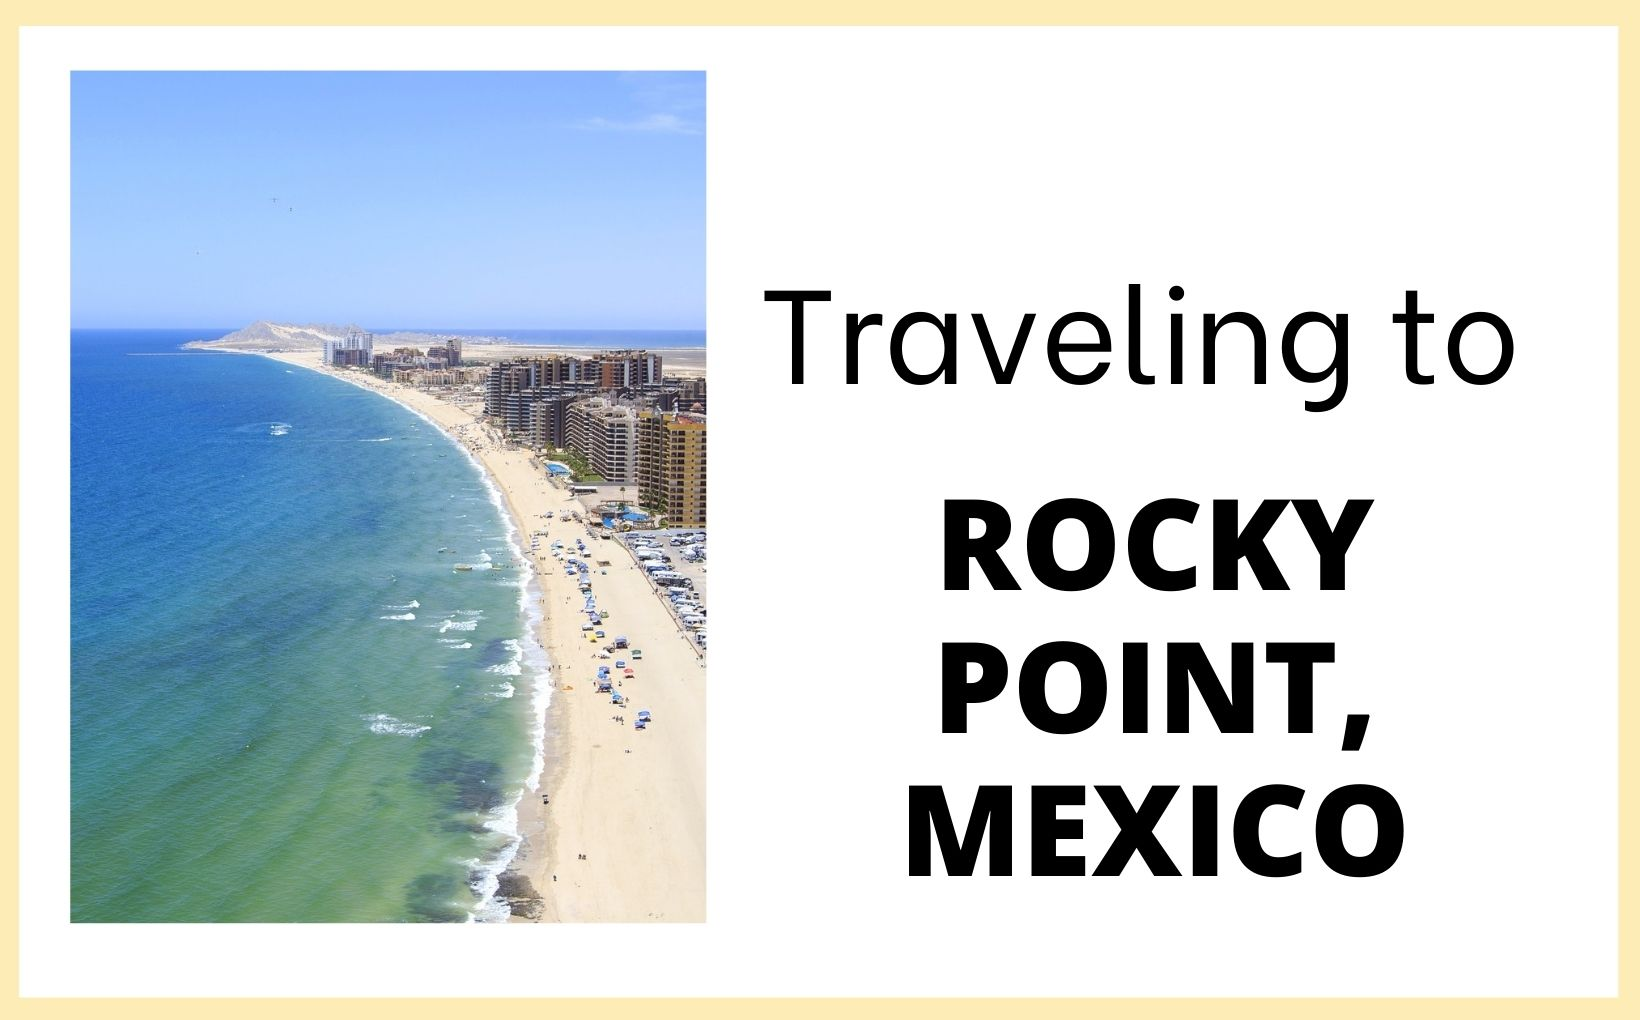 Traveling to Rocky Point, Mx feature image